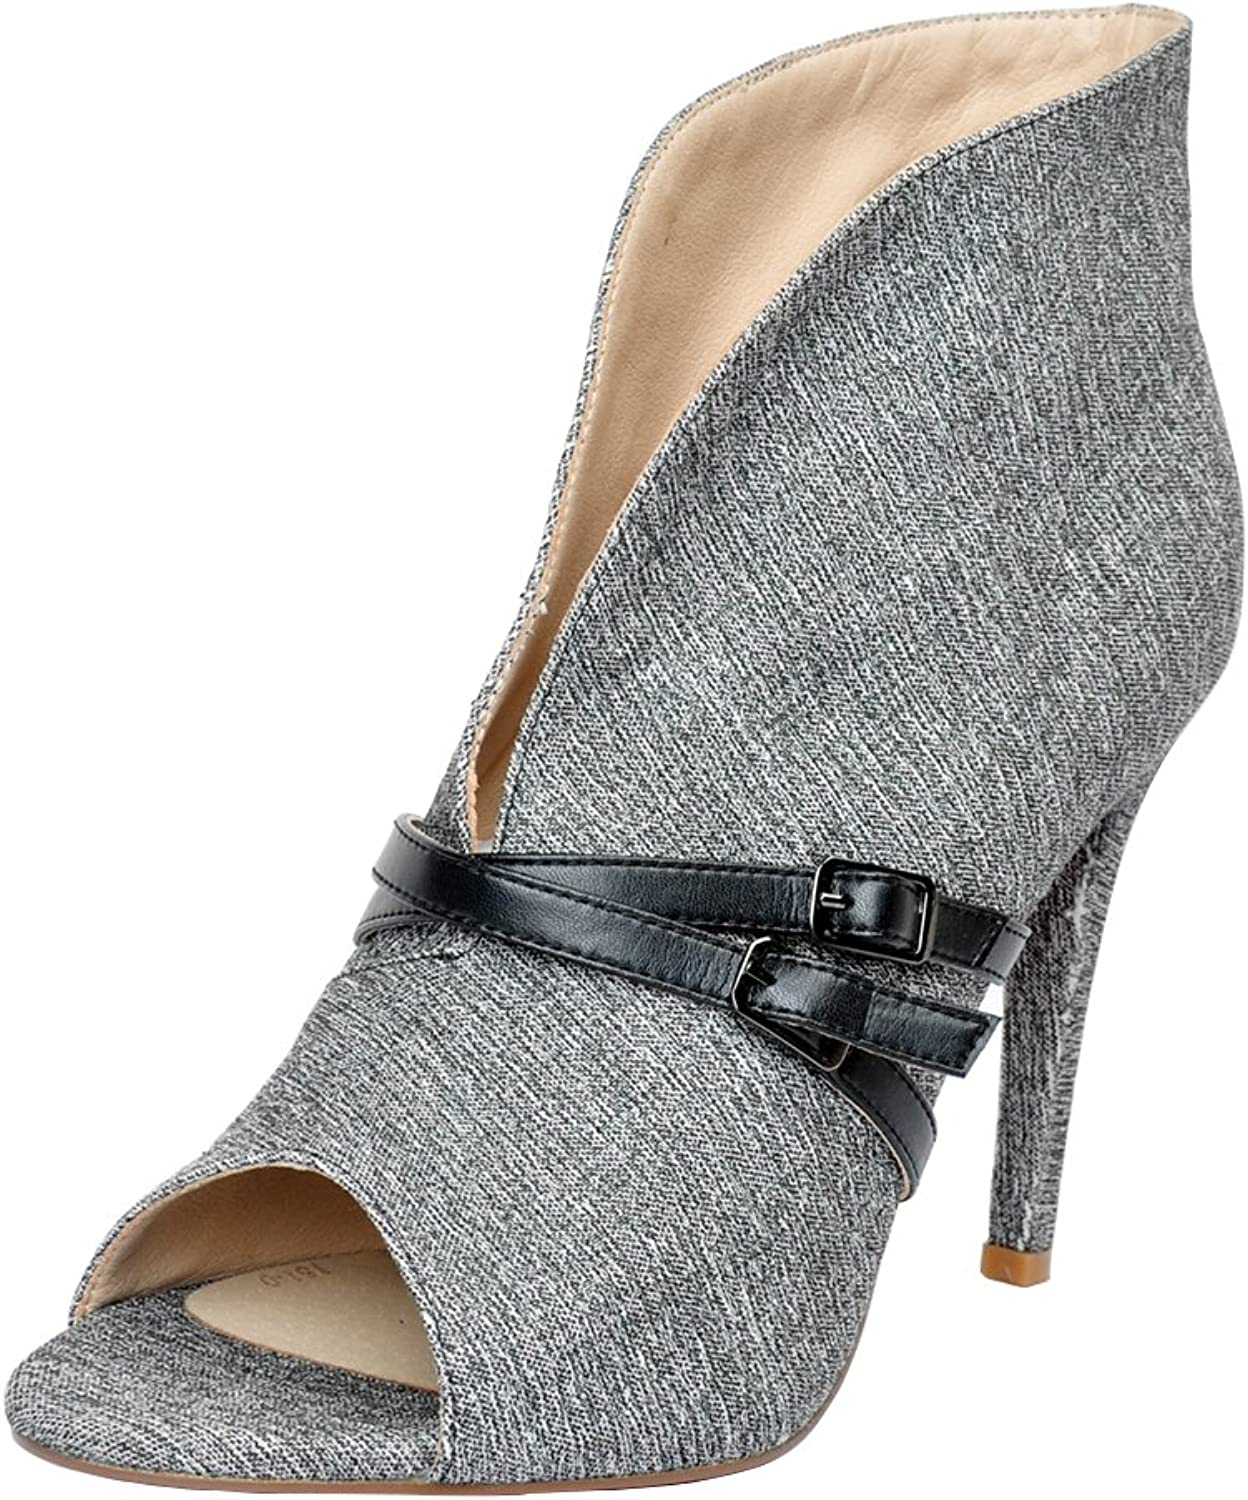 Original Intention Women Ankle Boots Peep Toe Slip-On Thin High Heels Sexy Elegant Grey shoes